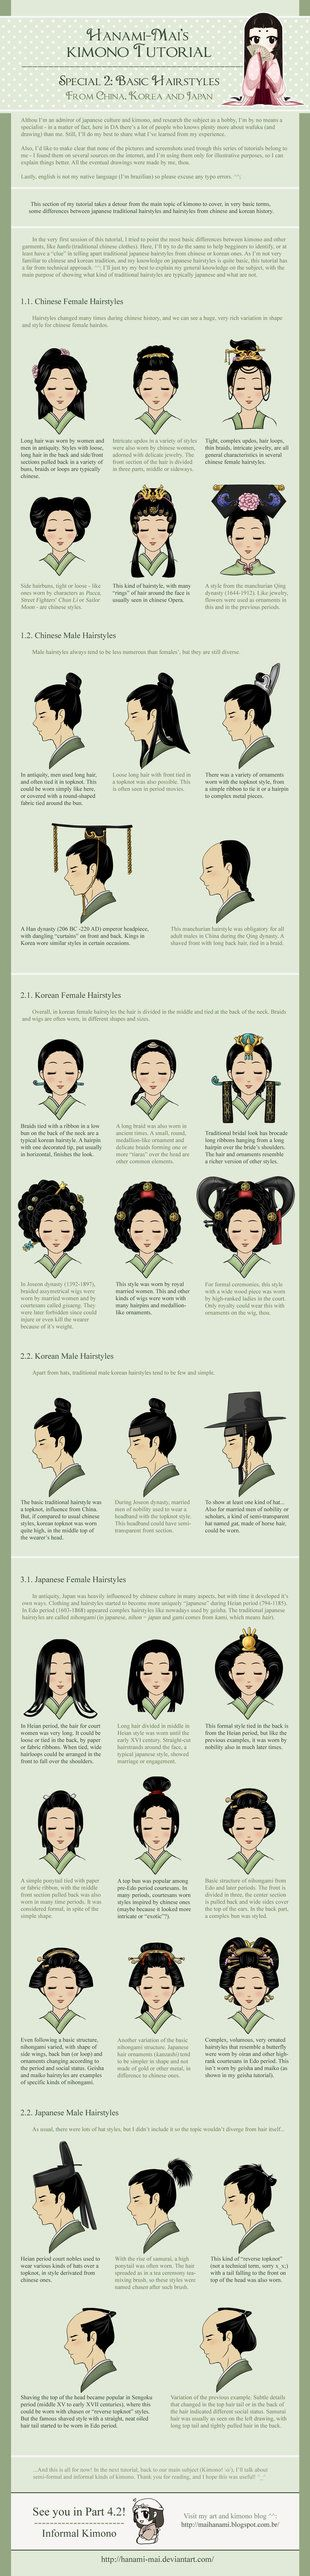 A small tutorial on Japanese, Chinese and Korean hairstyles through the ages.